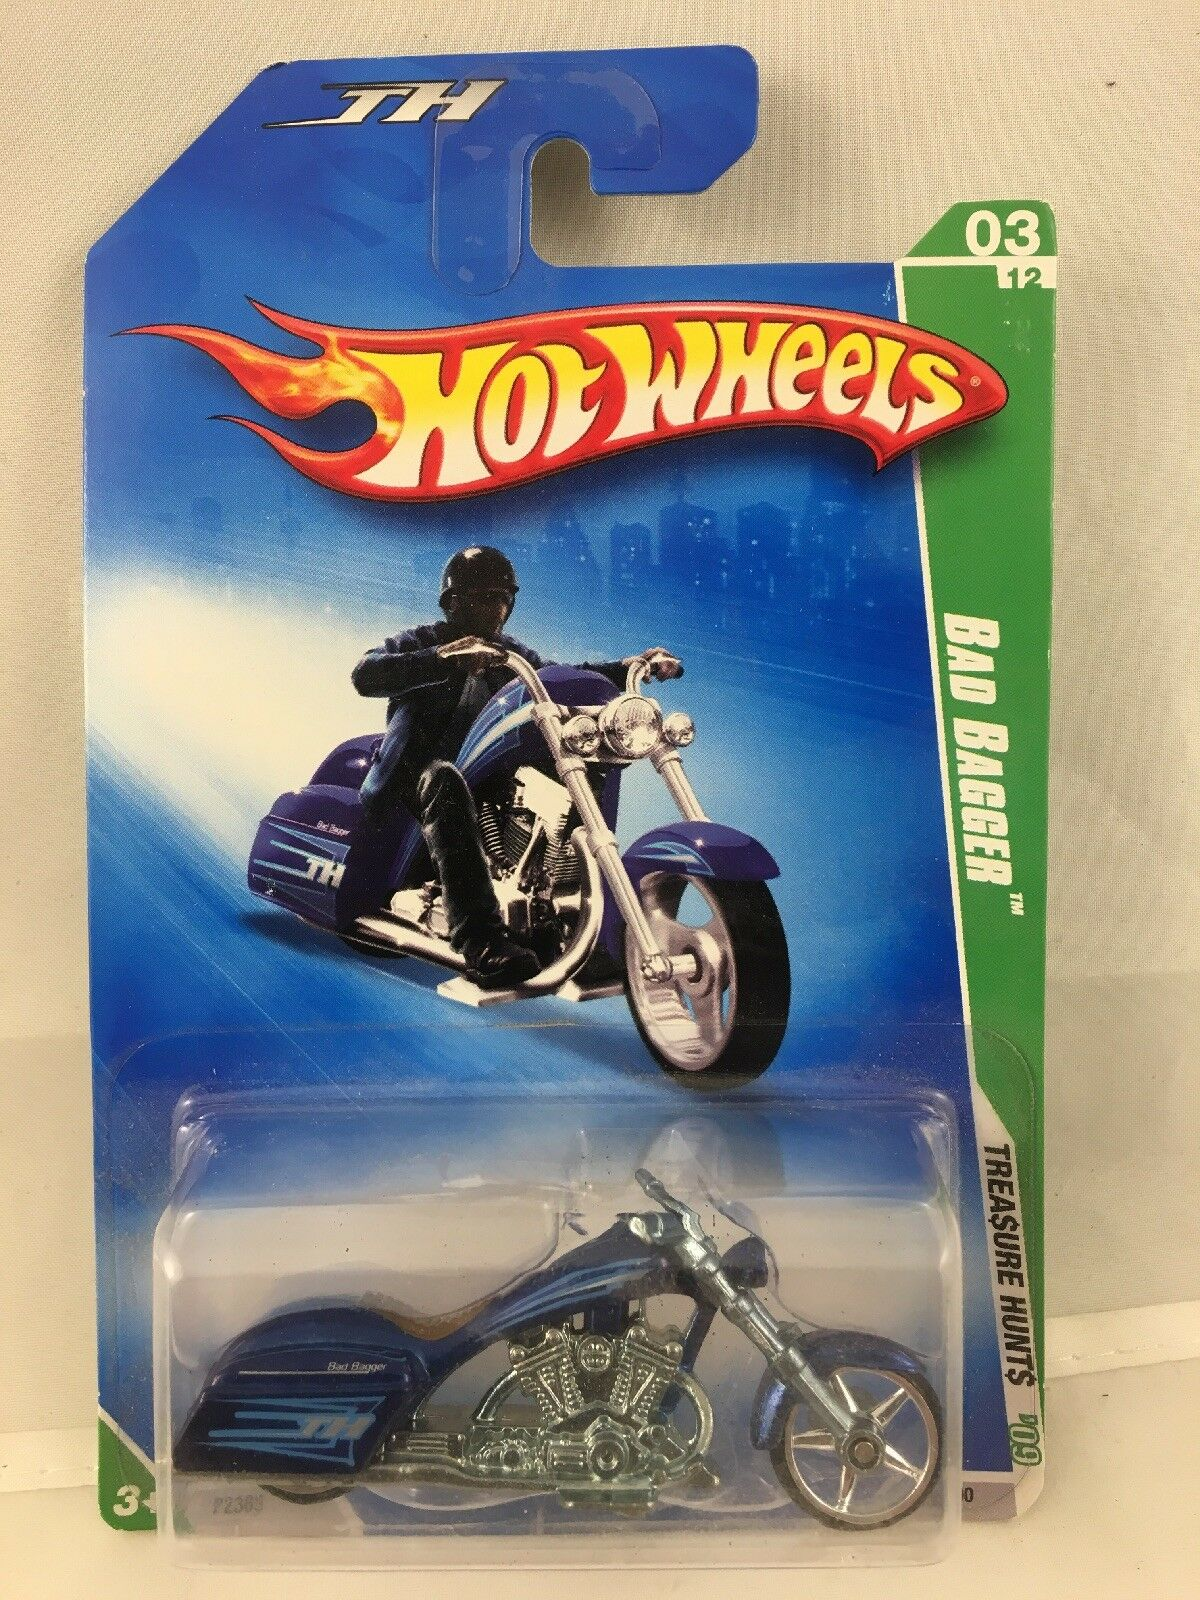 Hot Wheels 2009 Super Treasure caza Bad Bagger  12 sellado de fábrica